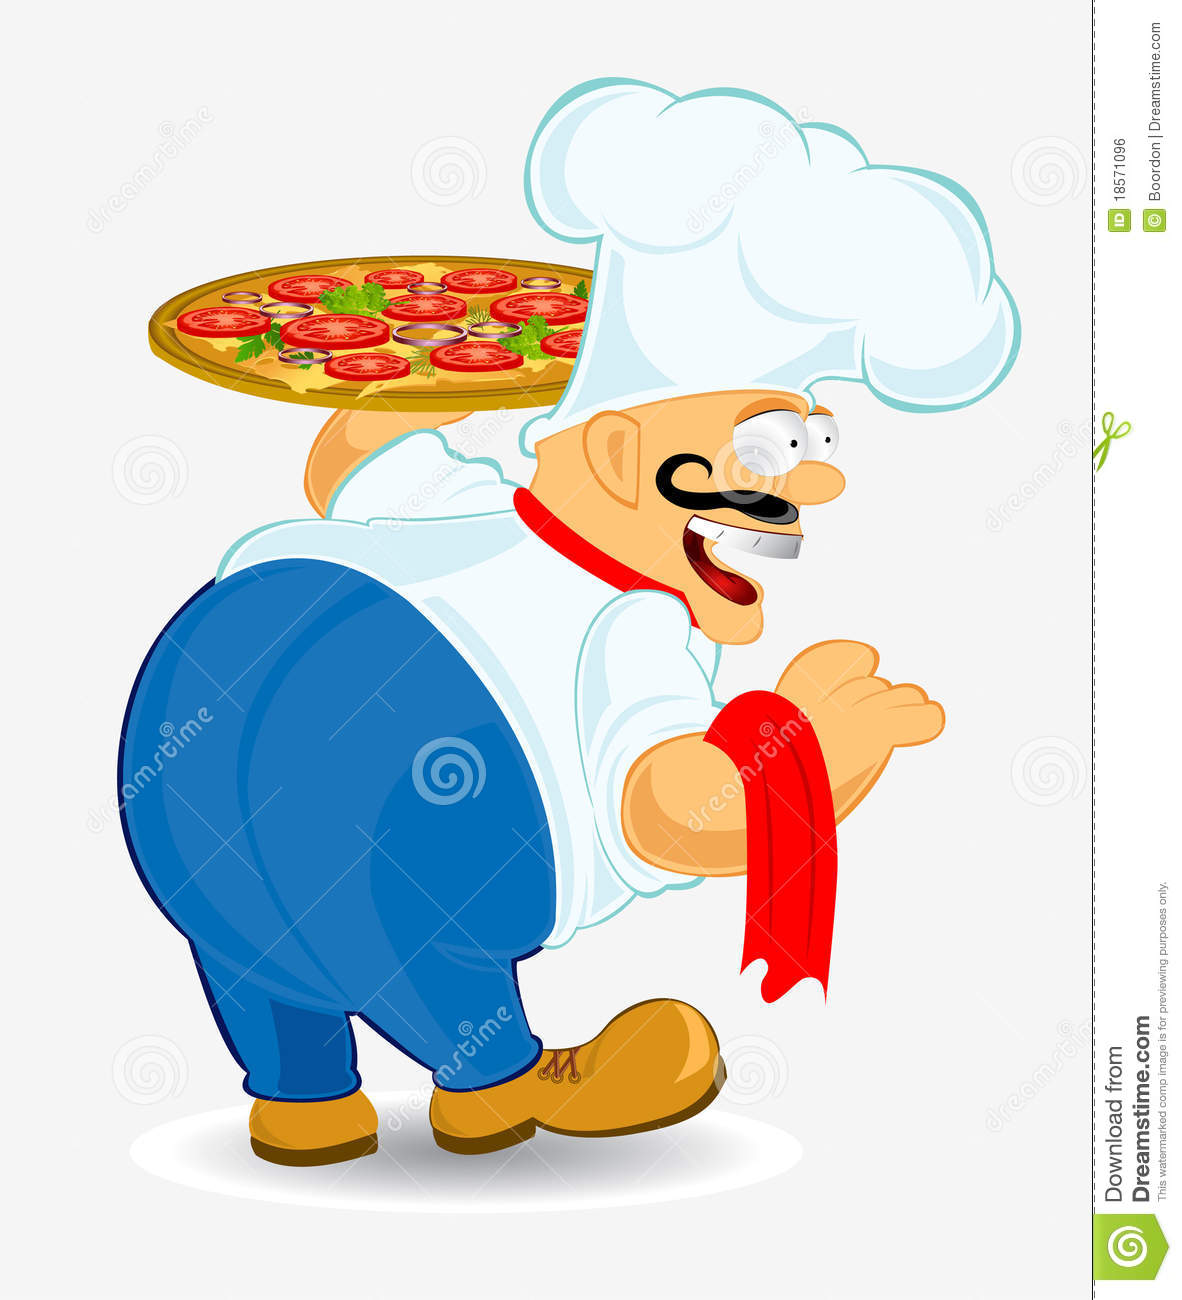 Chief Cook Pizza Stock Vector. Illustration Of Cooks